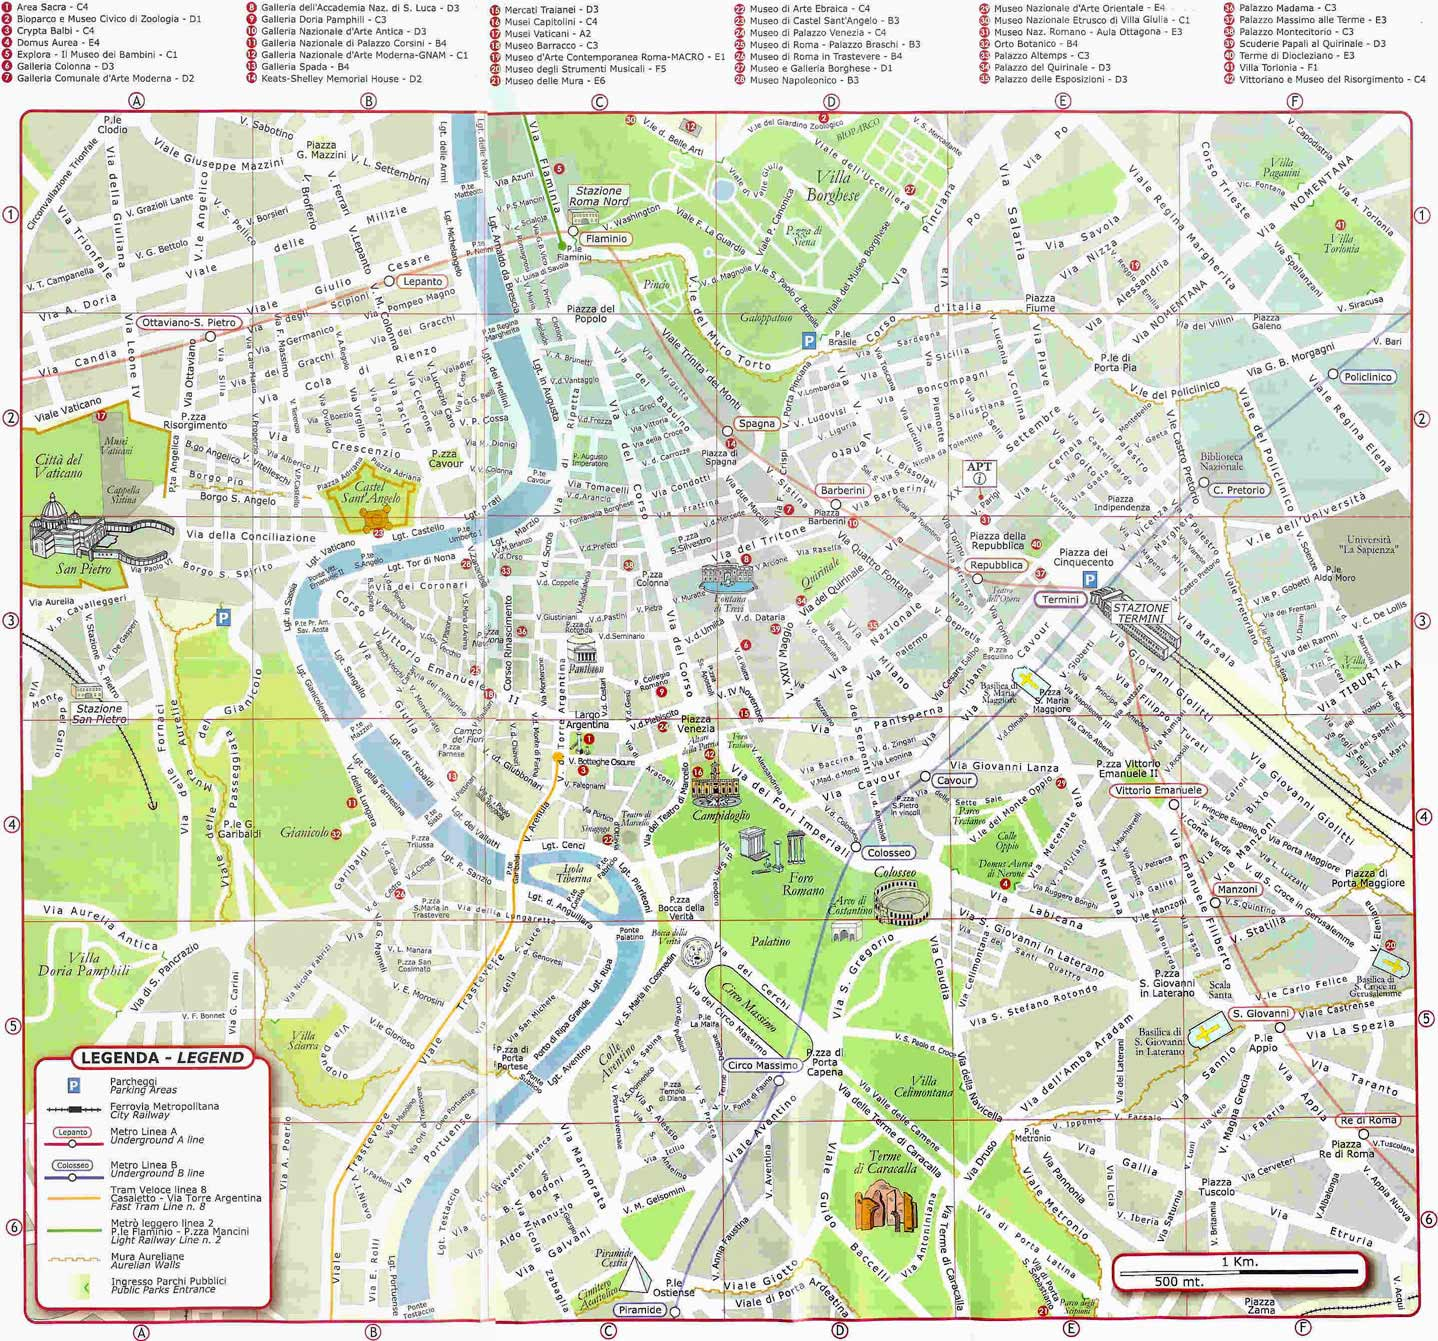 Maps of Rome Italy Roma Italia Maps Goparoo – Tourist Maps Of Rome